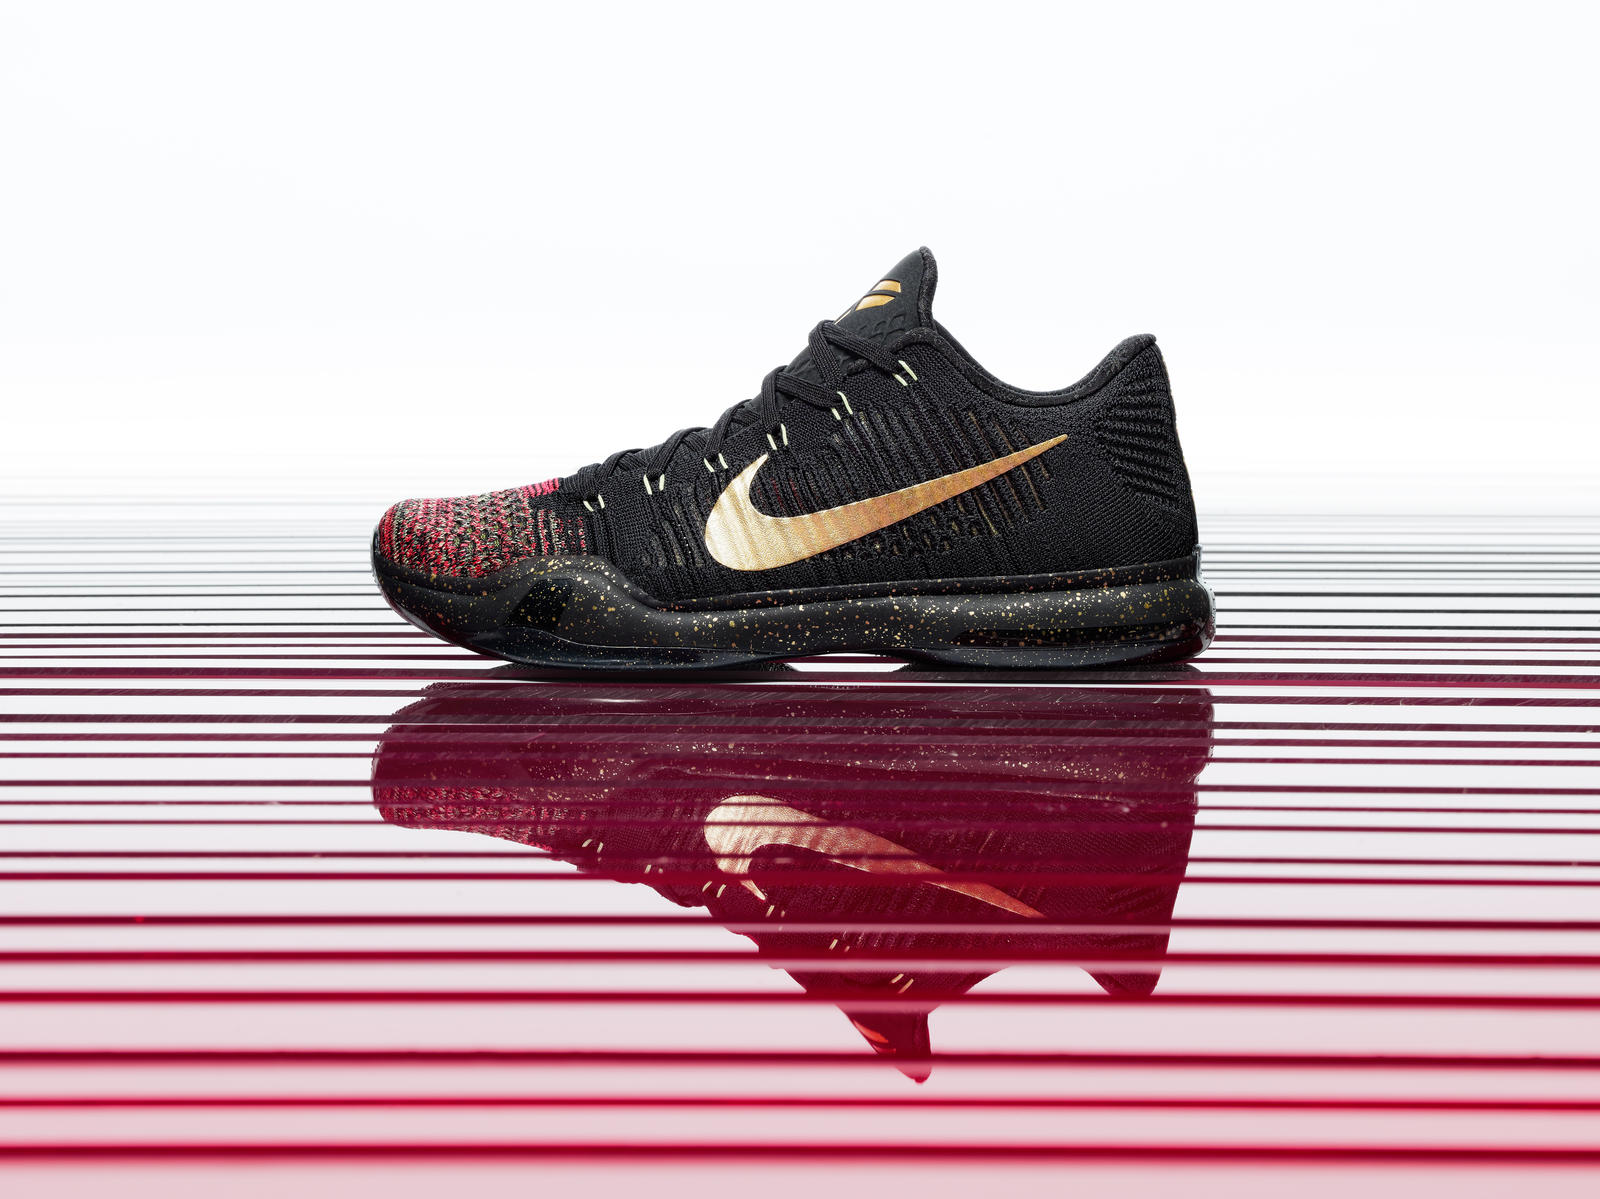 kyrie basketball shoes 2015